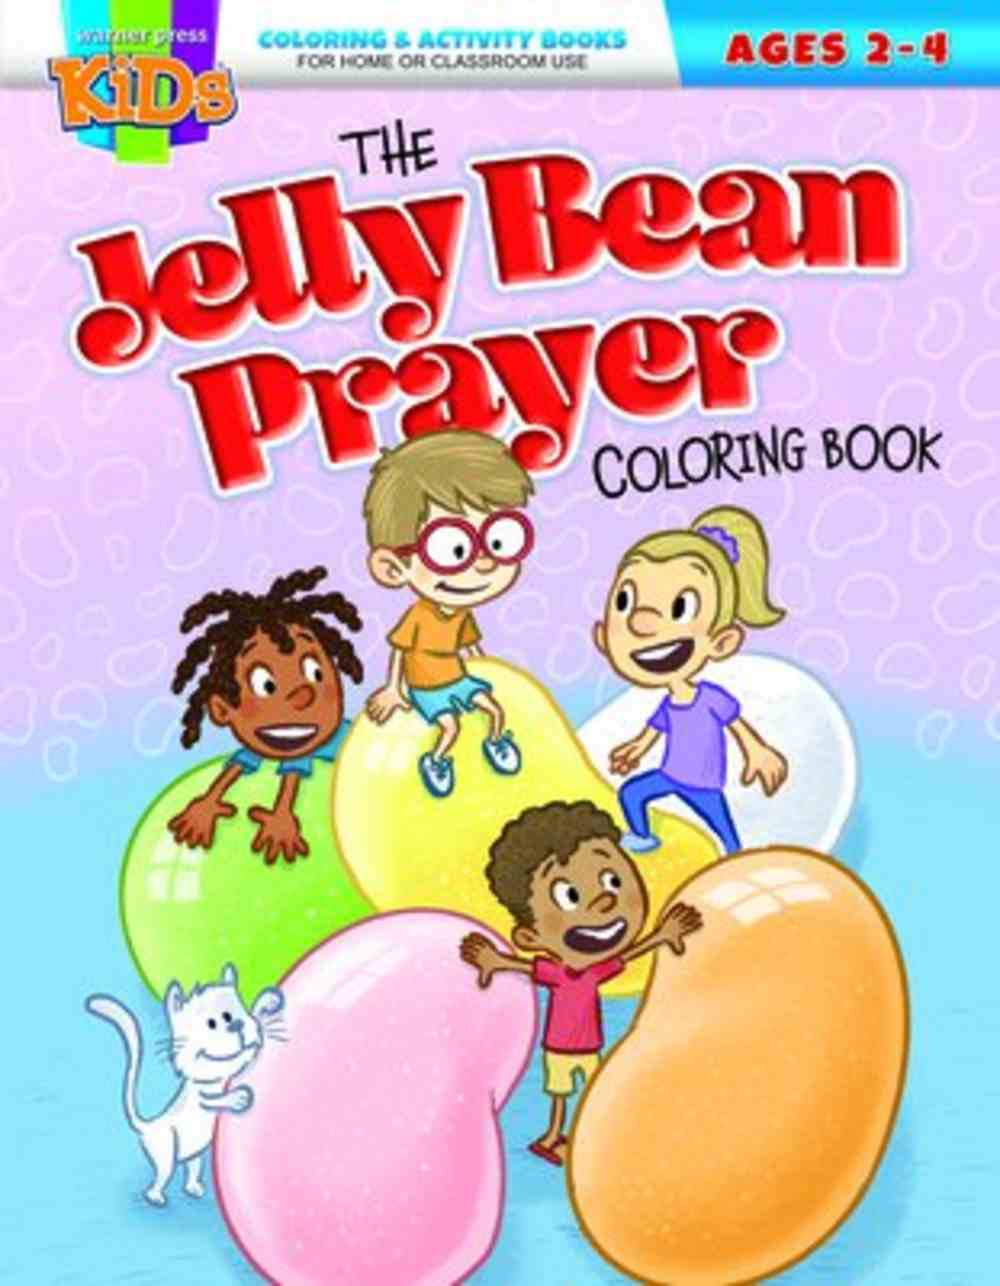 The Jelly Bean Prayer Coloring Book (Ages 2-4, NIV) (Warner Press Colouring & Activity Books Series) Paperback